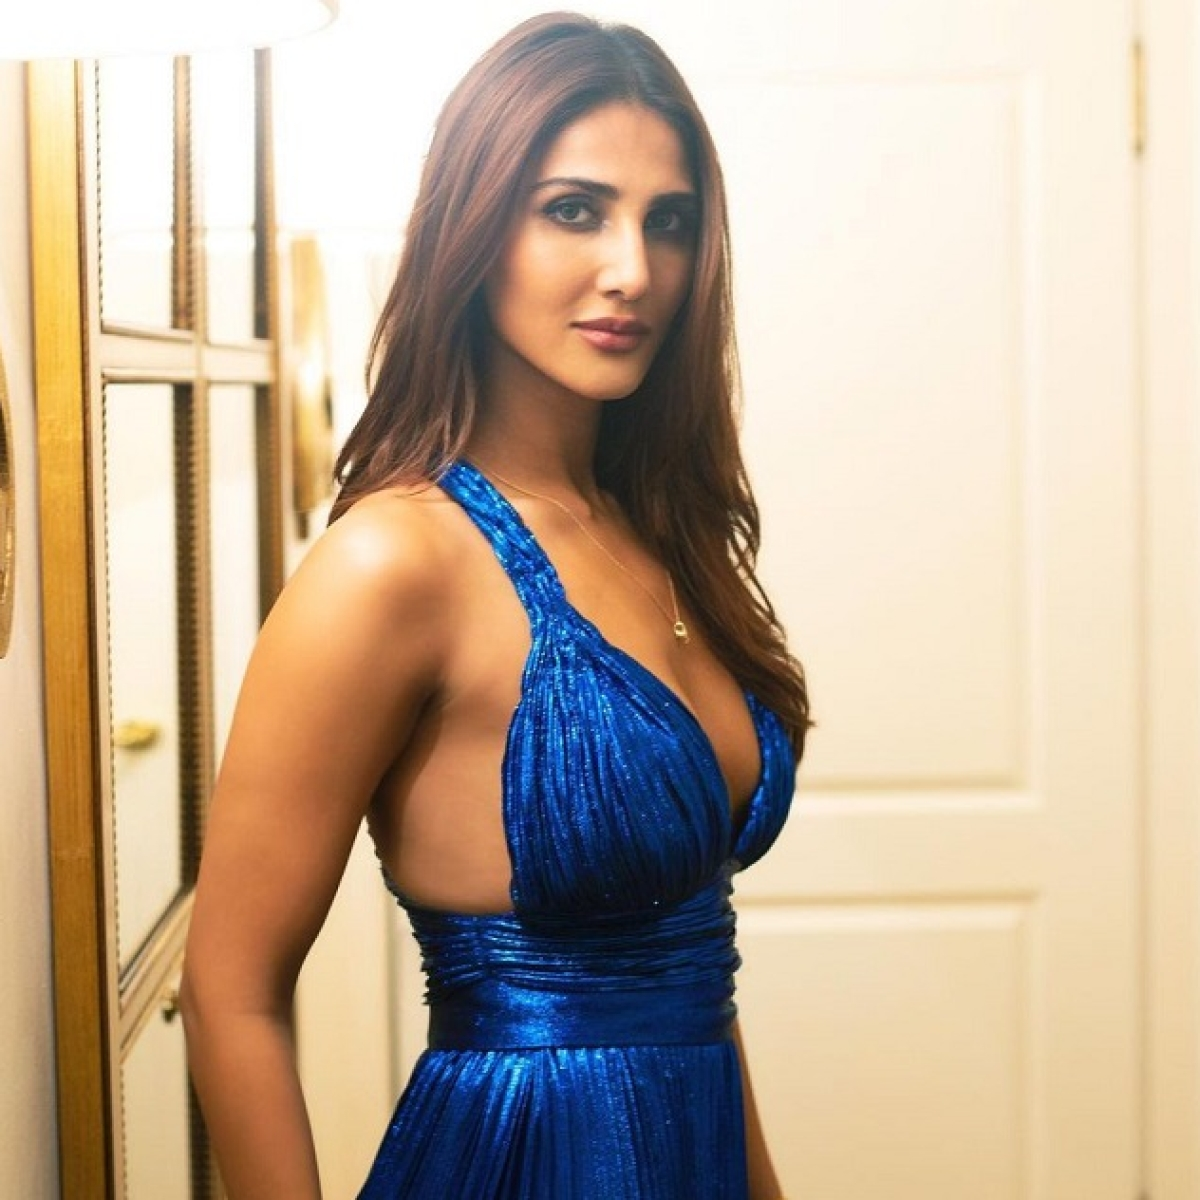 'Audience would want to watch films that are and clutter-breaking,' says Vaani Kapoor